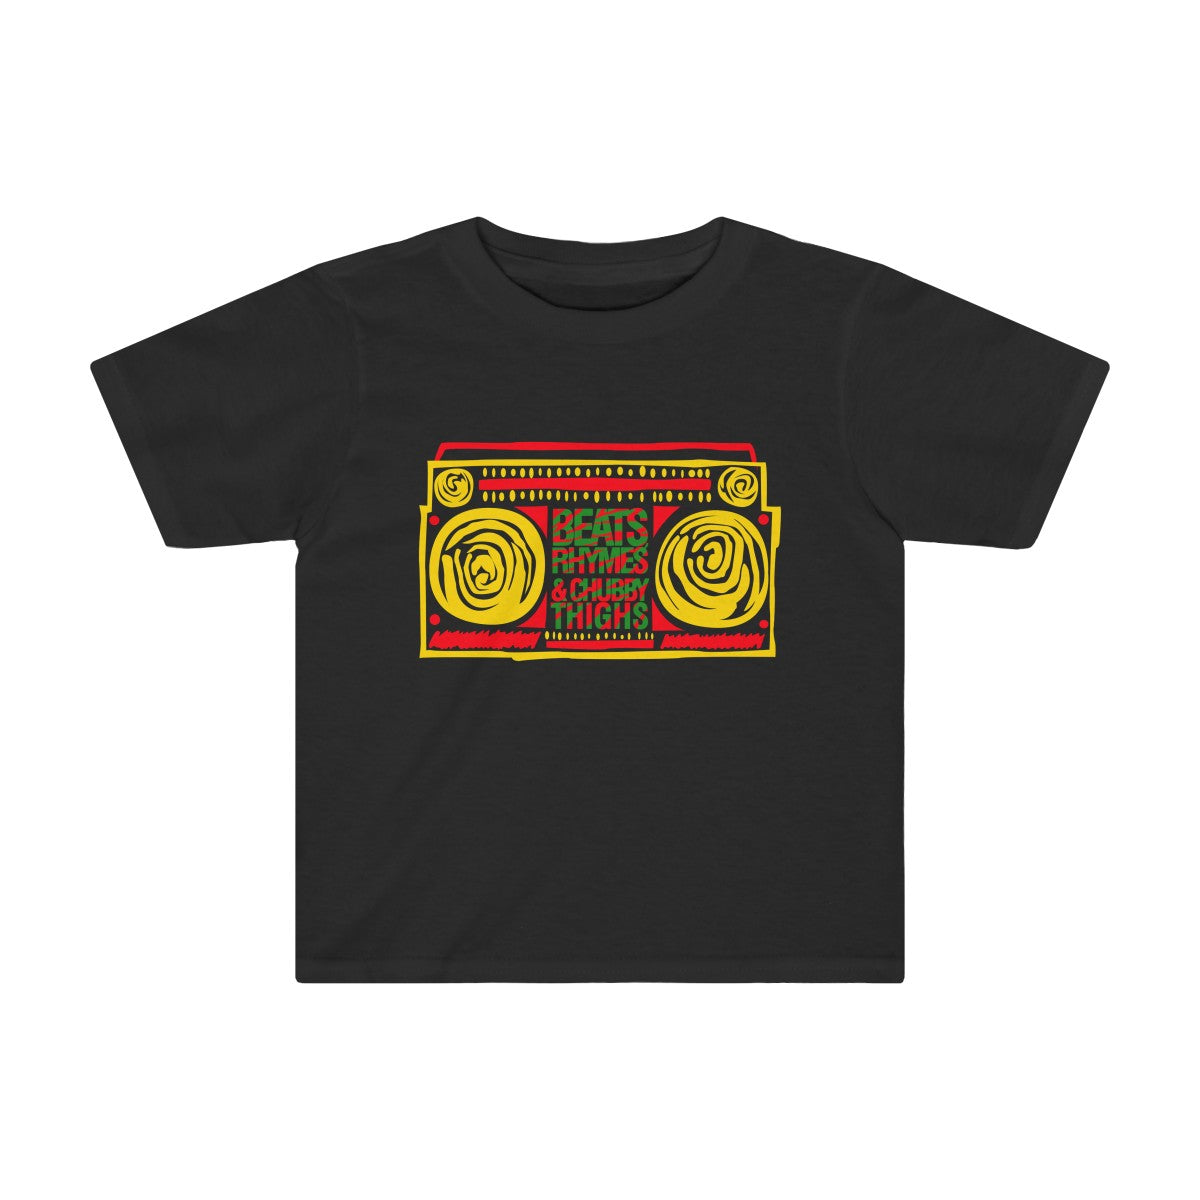 Beats, Rhymes, & Chubby Thighs Toddler Tee